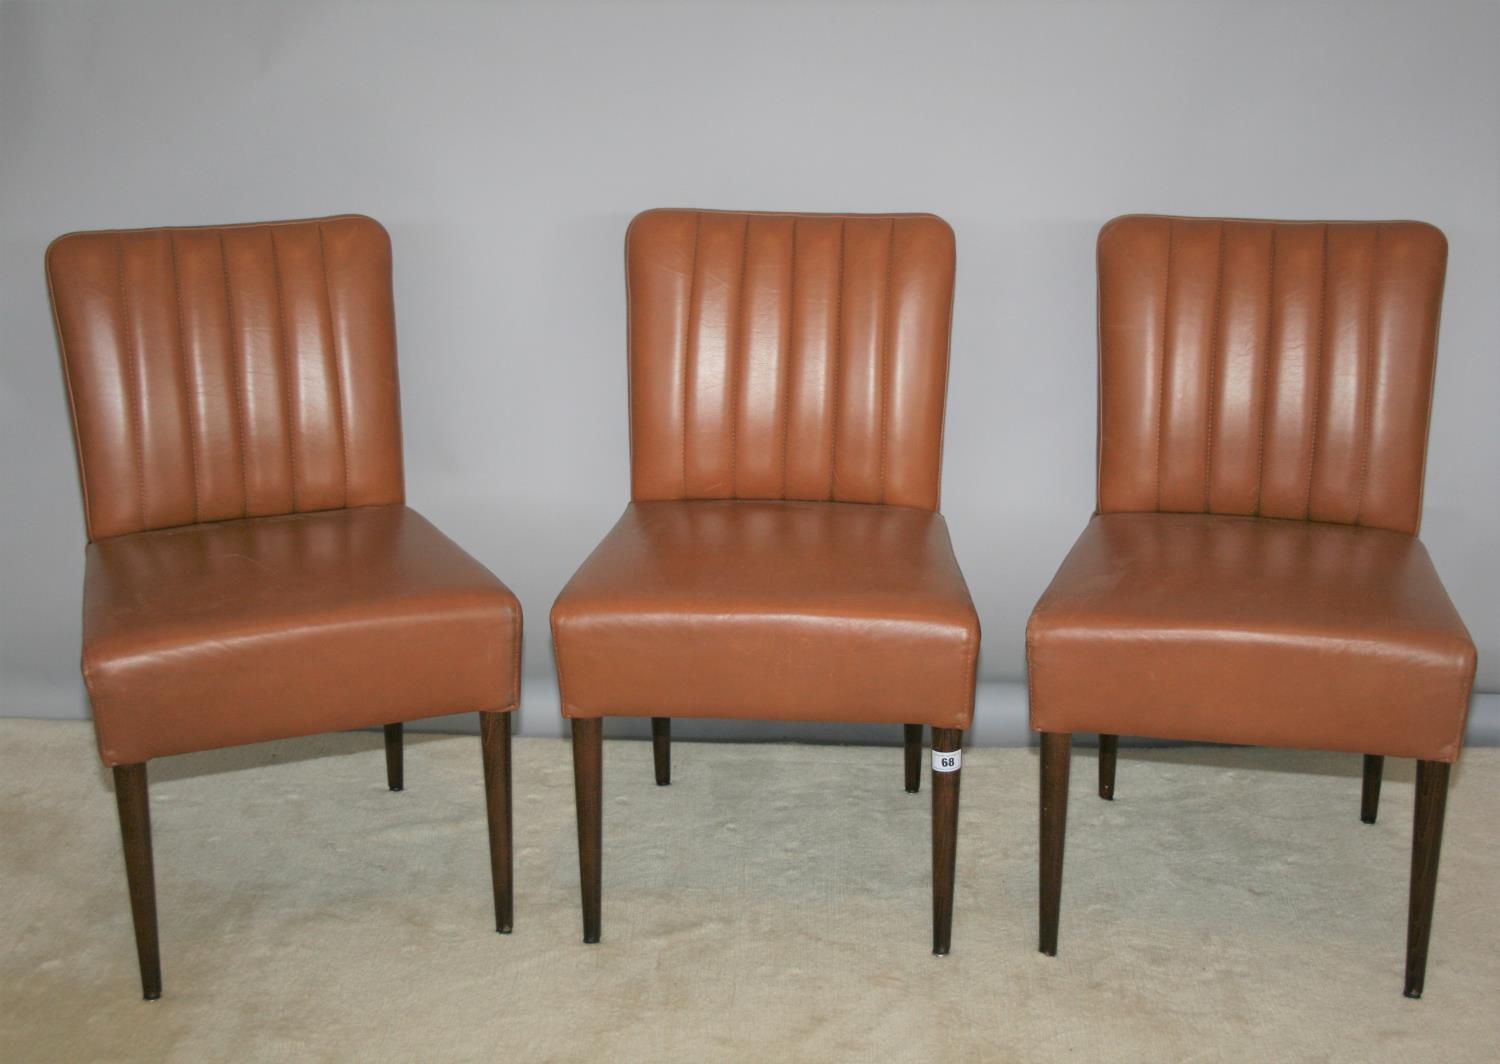 Set of three stylish brown leather ribbed back chairs 18 W x 34 H x 18 D